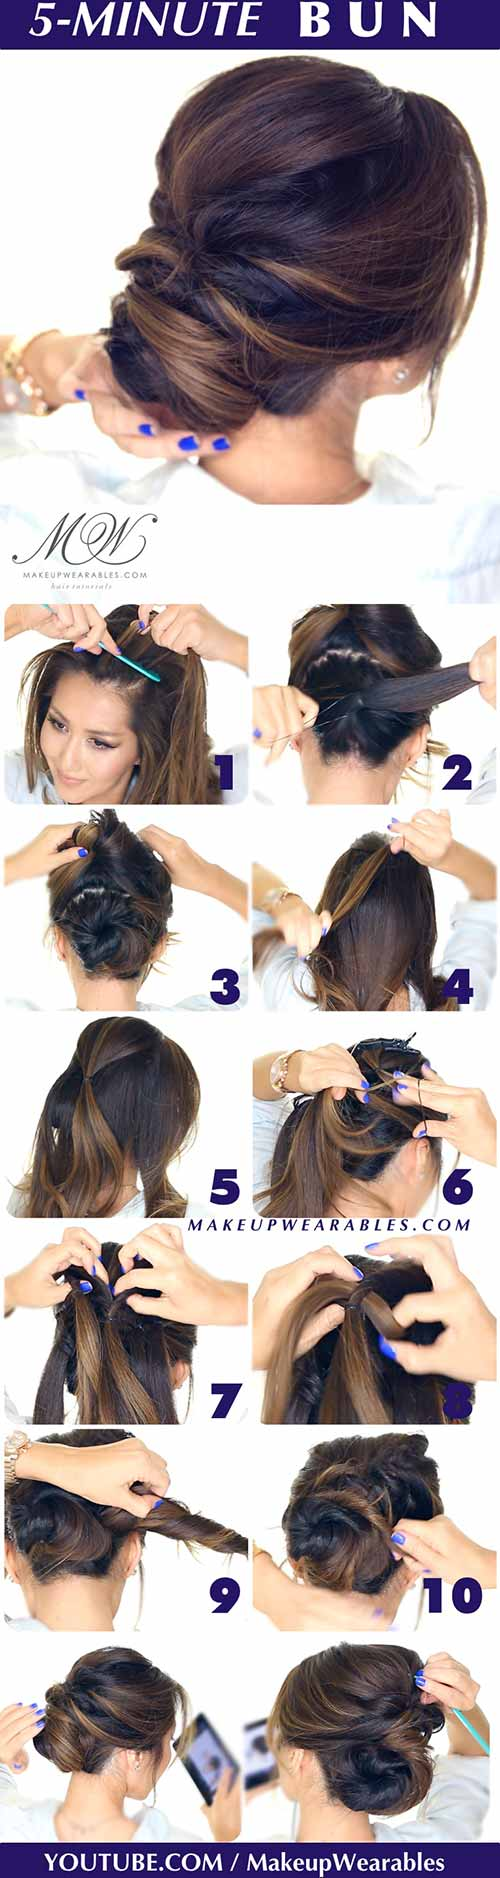 Updo Hairstyles - The 5-Minute Bun